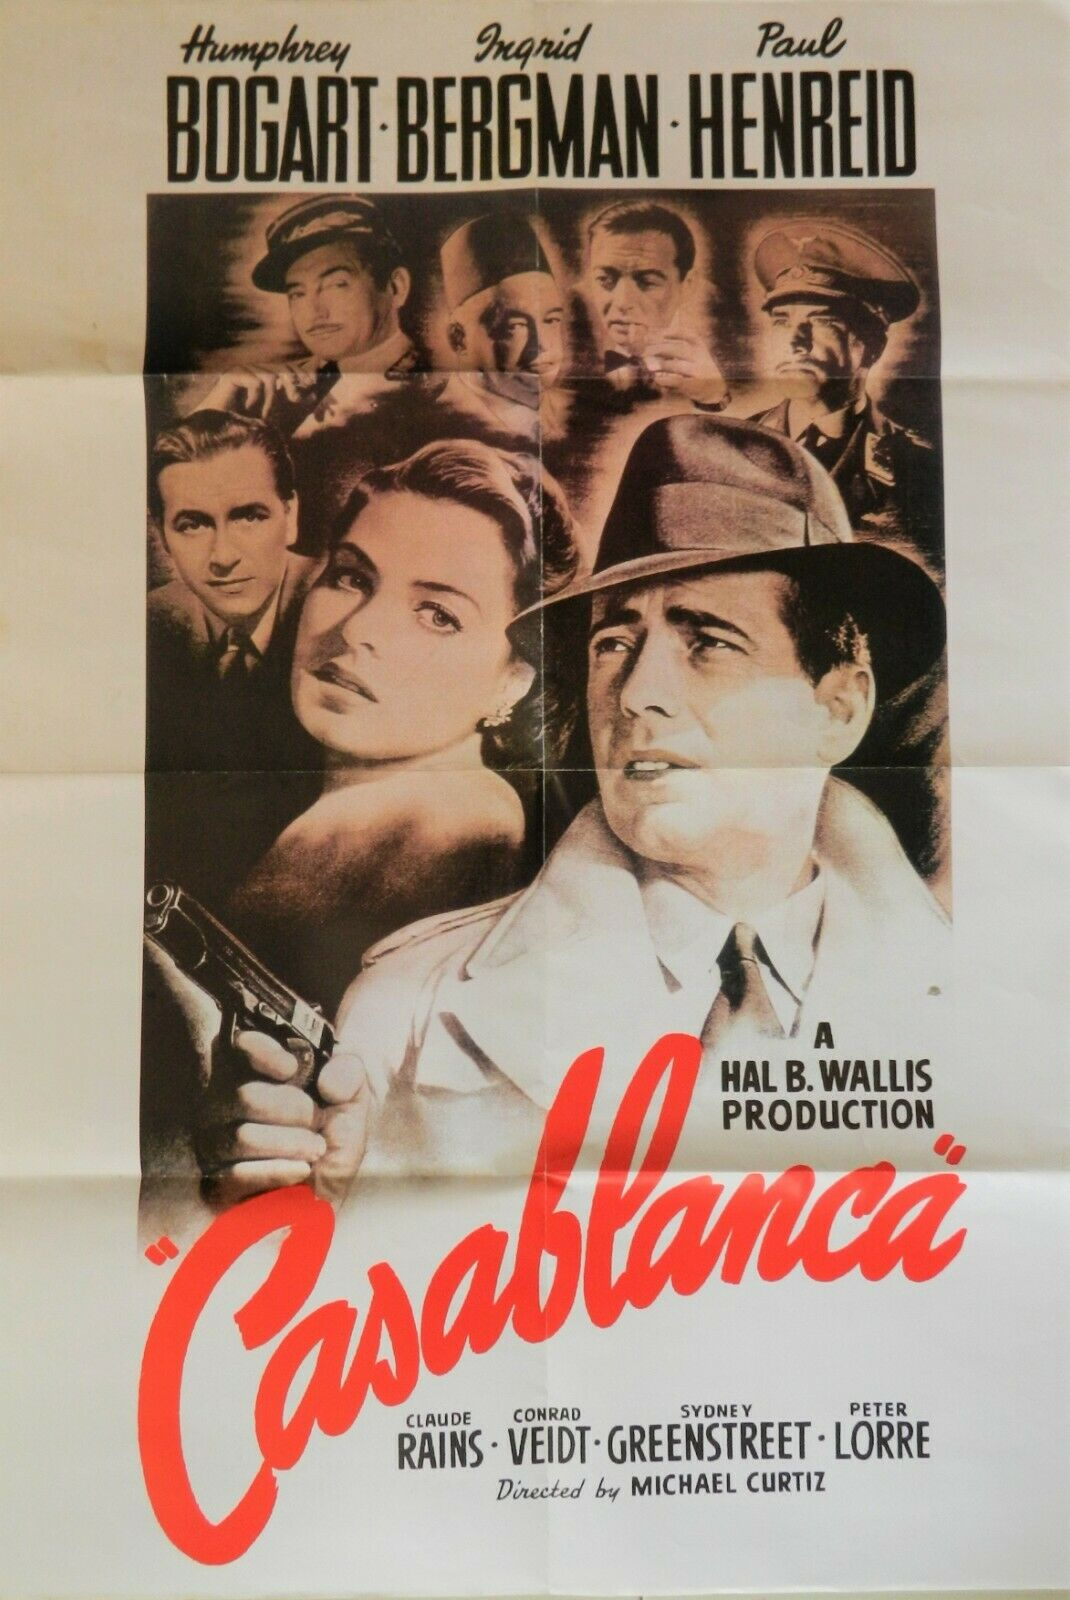 CASABLANCA 1942 Folded Movie Collectible Poster - 23 ins x 33 ins